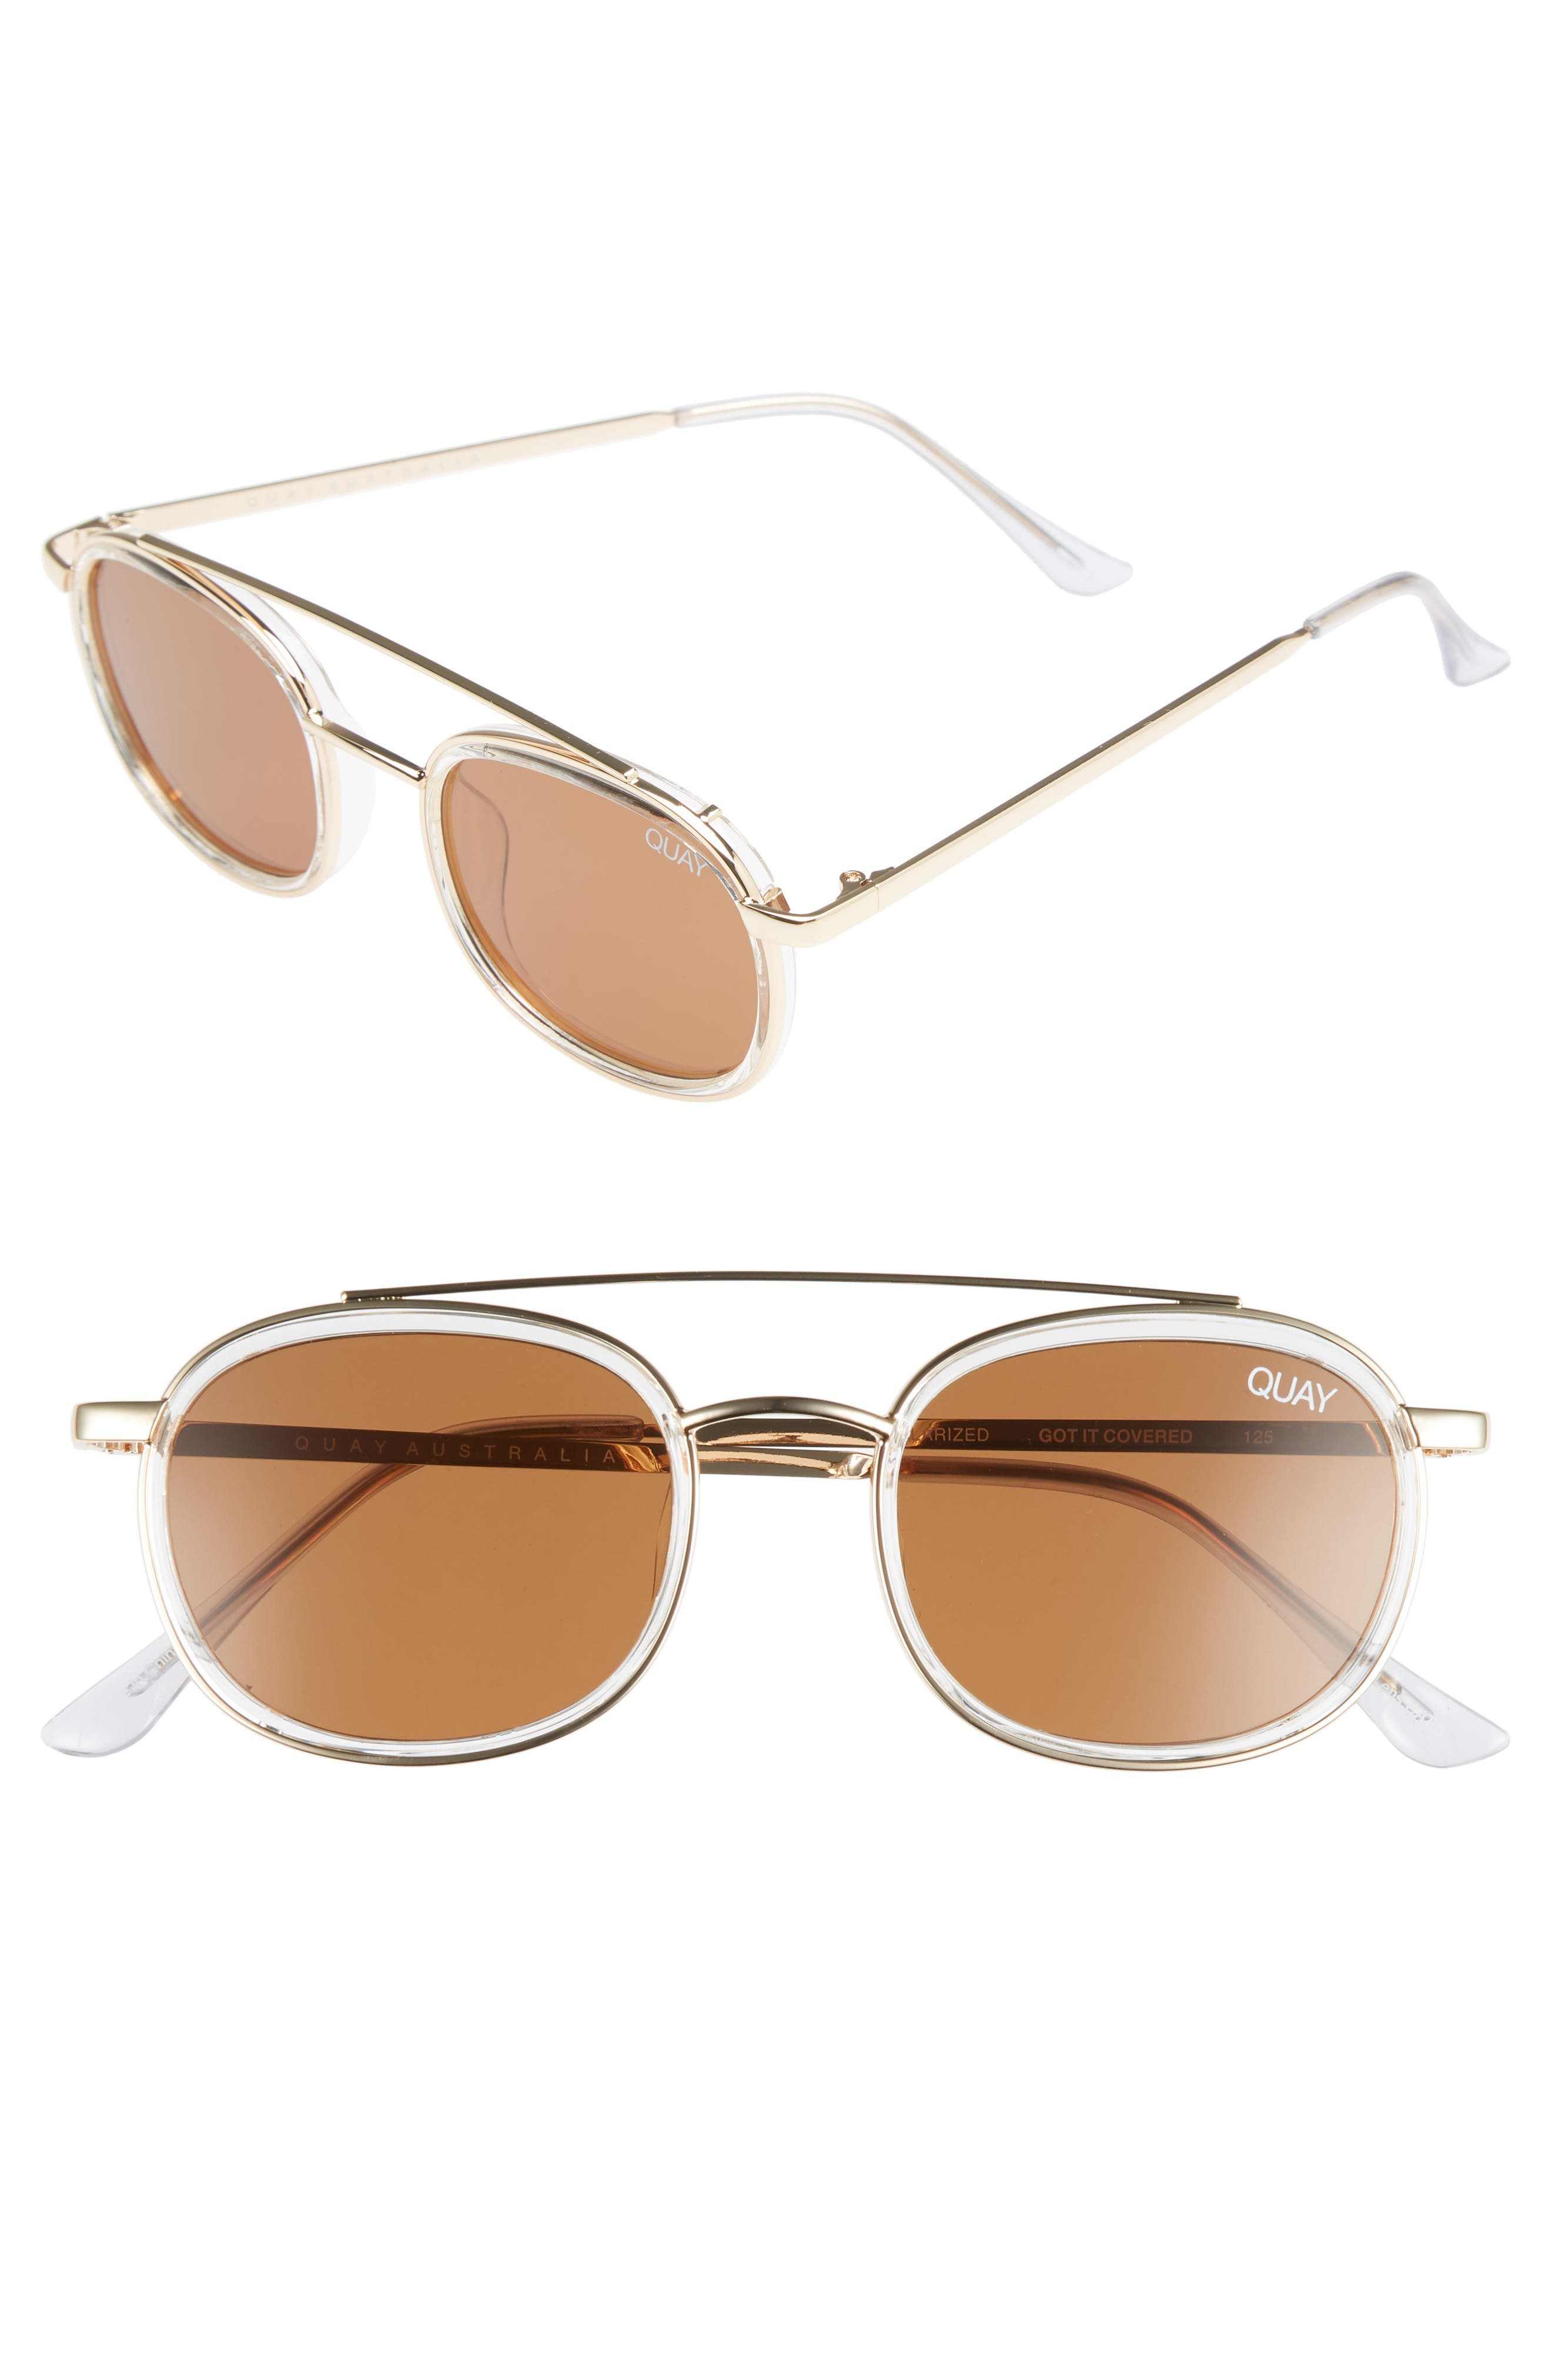 Got It Covered 50mm Polarized Sunglasses,                             Main thumbnail 1, color,                             CLEAR / BROWN LENS